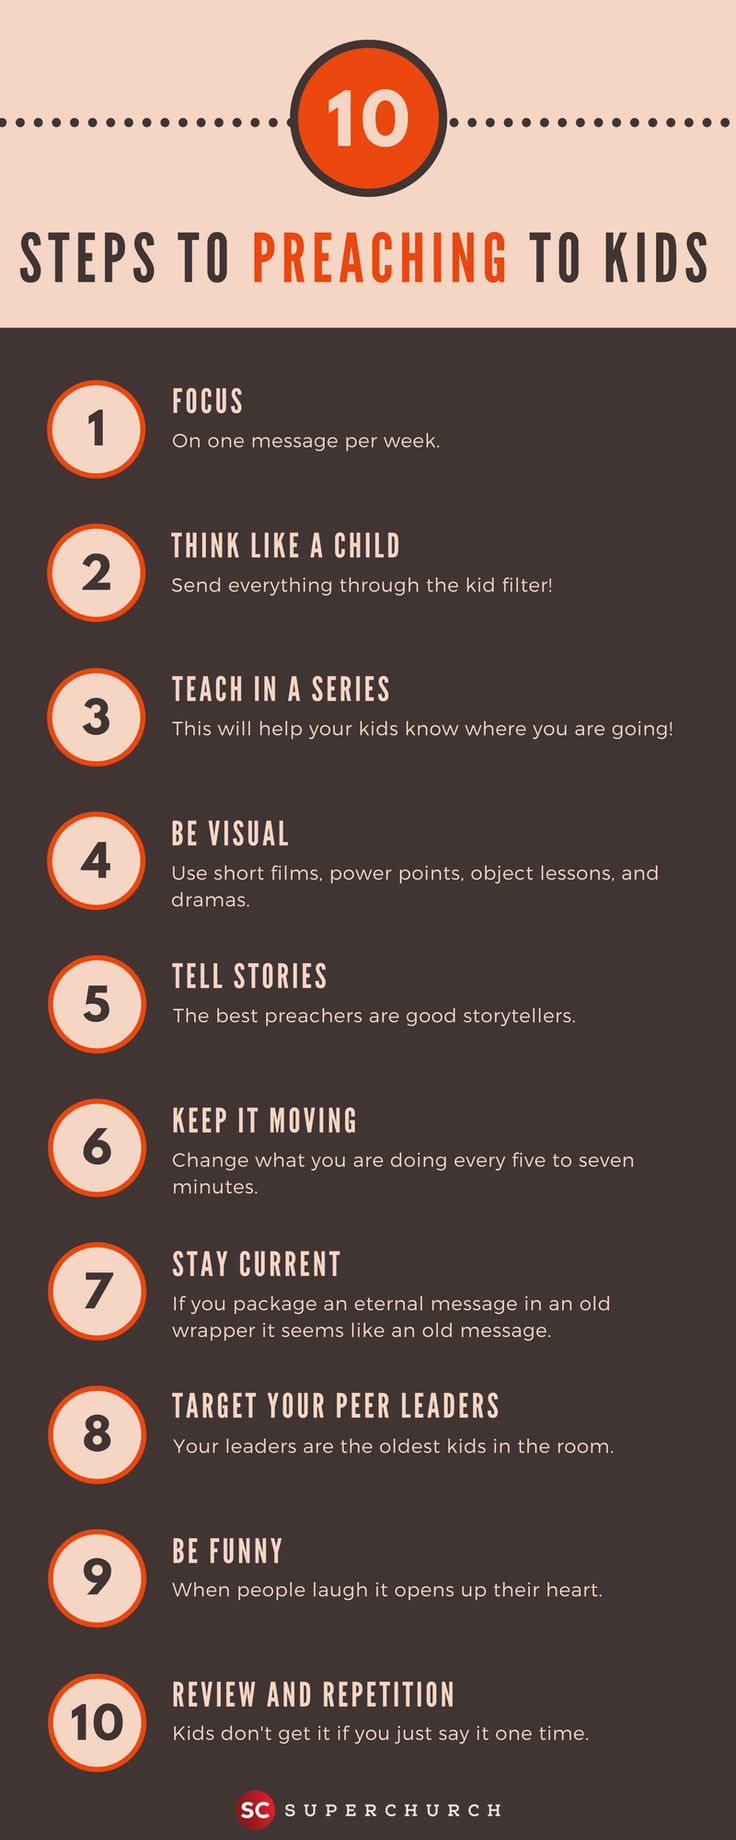 Here's a handy infographic we made on the 10 steps to preaching to kids!